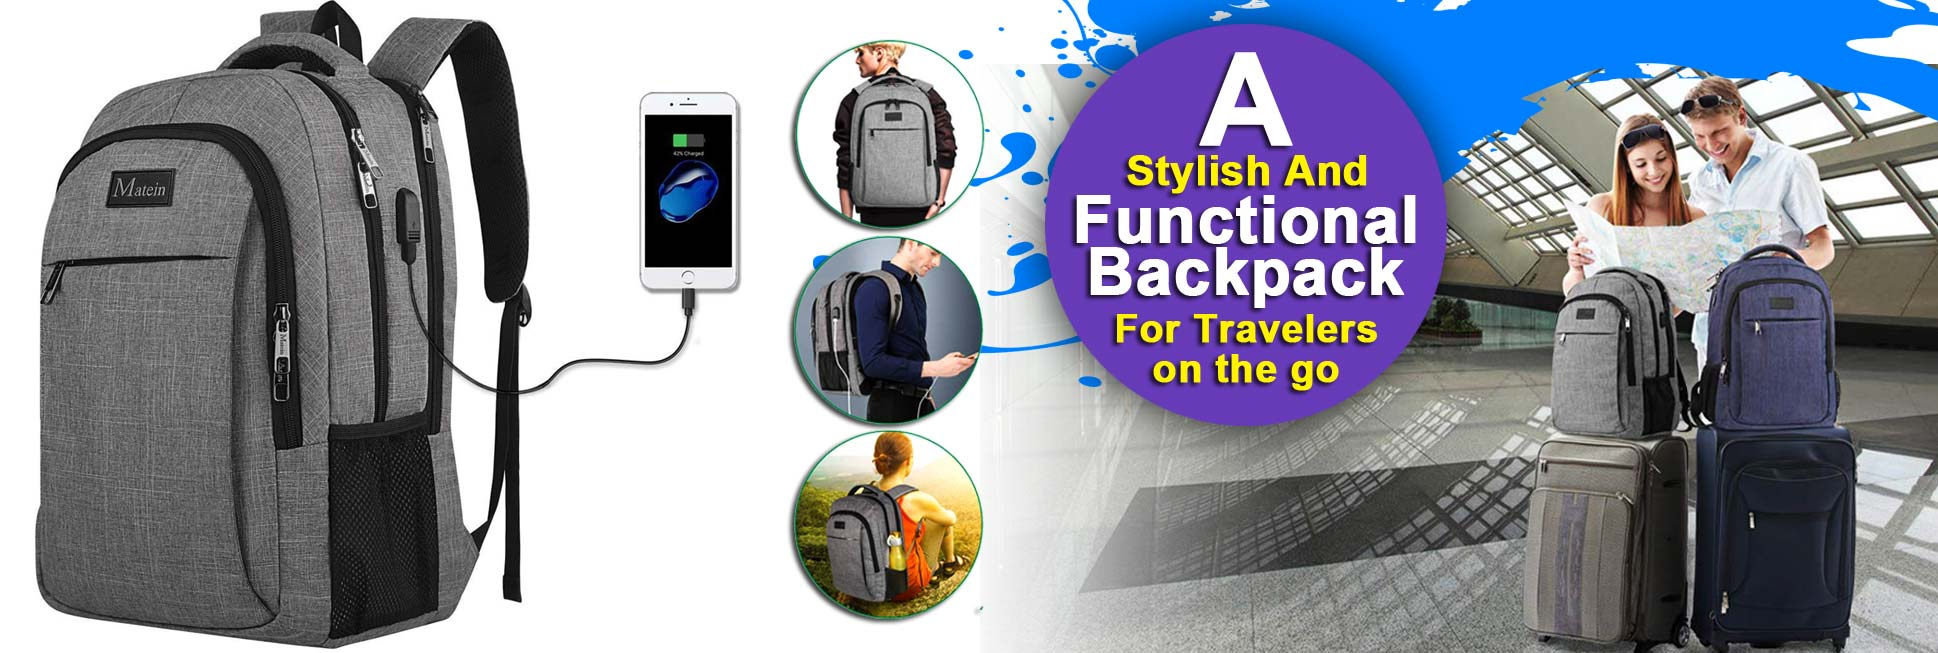 A Stylish And Functional Backpack For Travelers On The Go